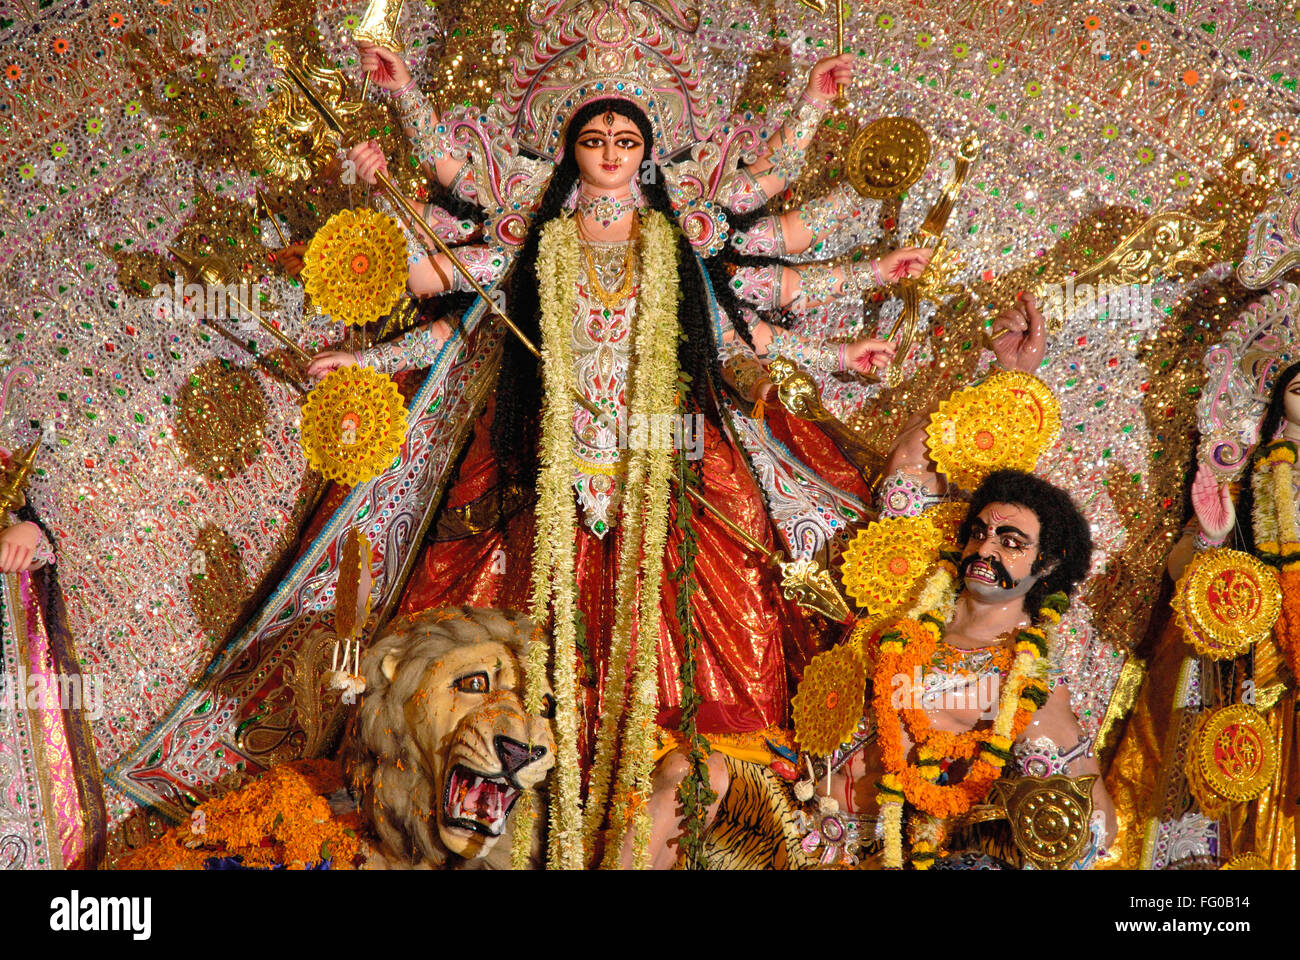 Demon Alamy Goddess Bengal Photo 95894992 Stock Navaratri Navratri Durgotsav Killing - Durga At